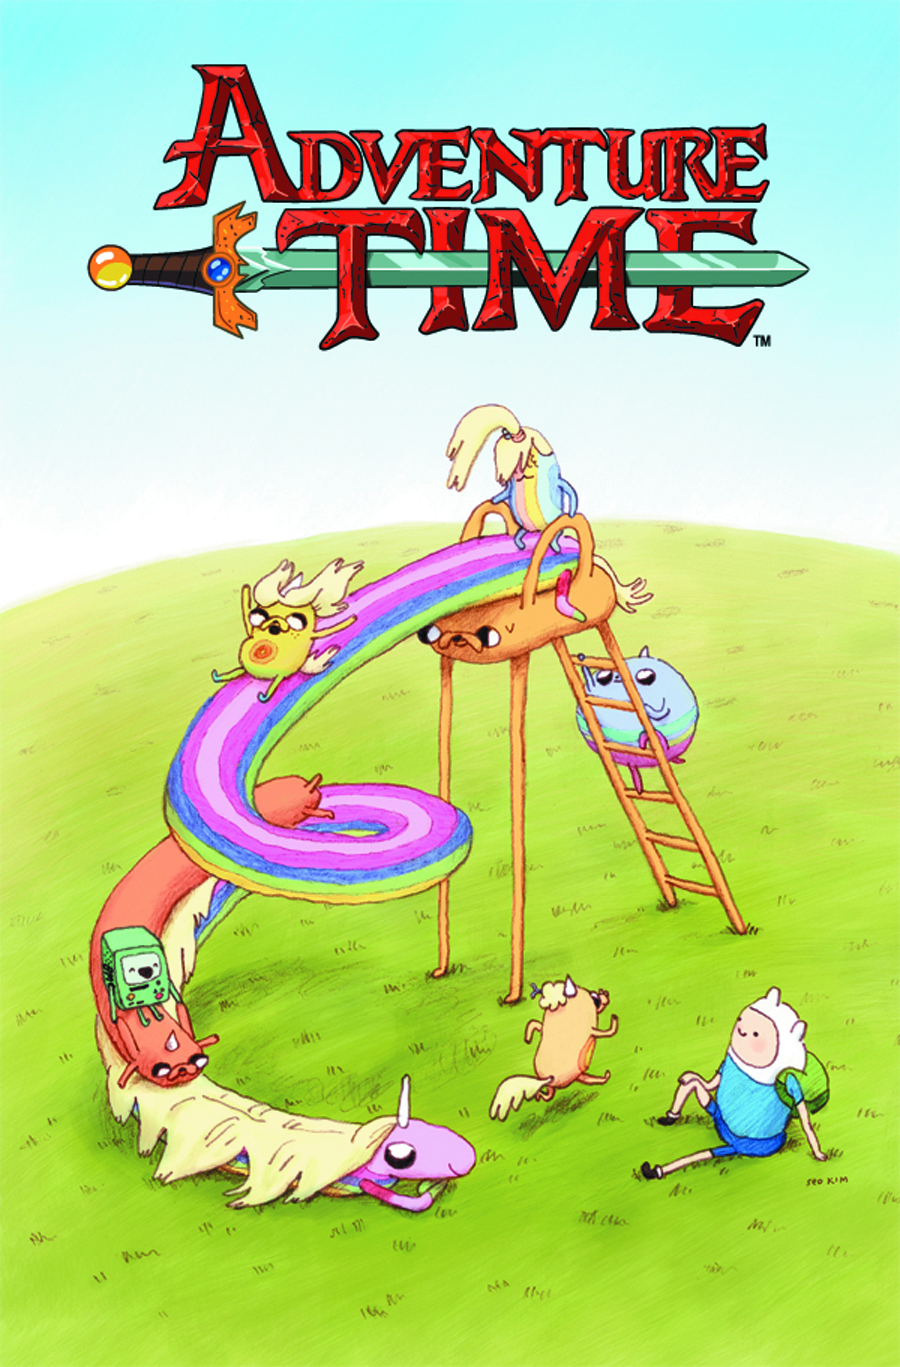 ADVENTURE TIME #23 MAIN CVRS